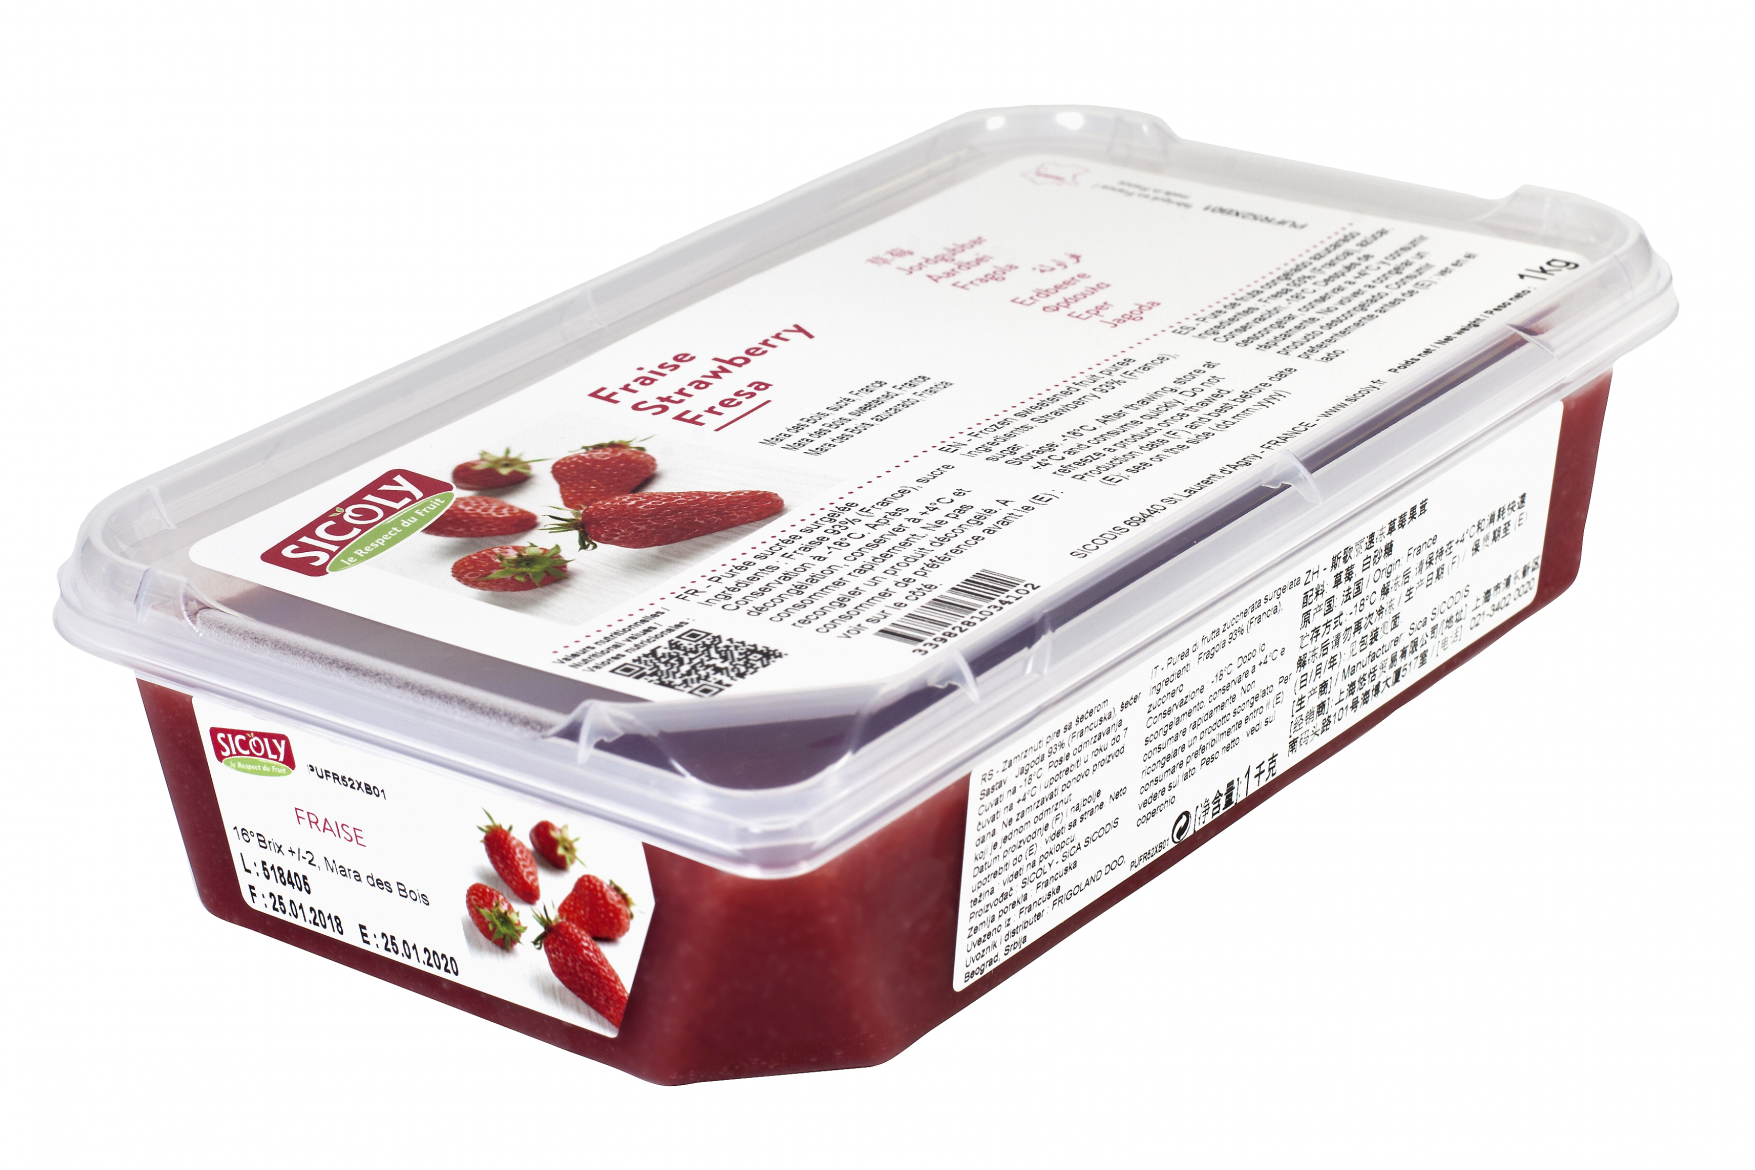 Sicoly product image Sweetened Mara des bois strawberry purée - France